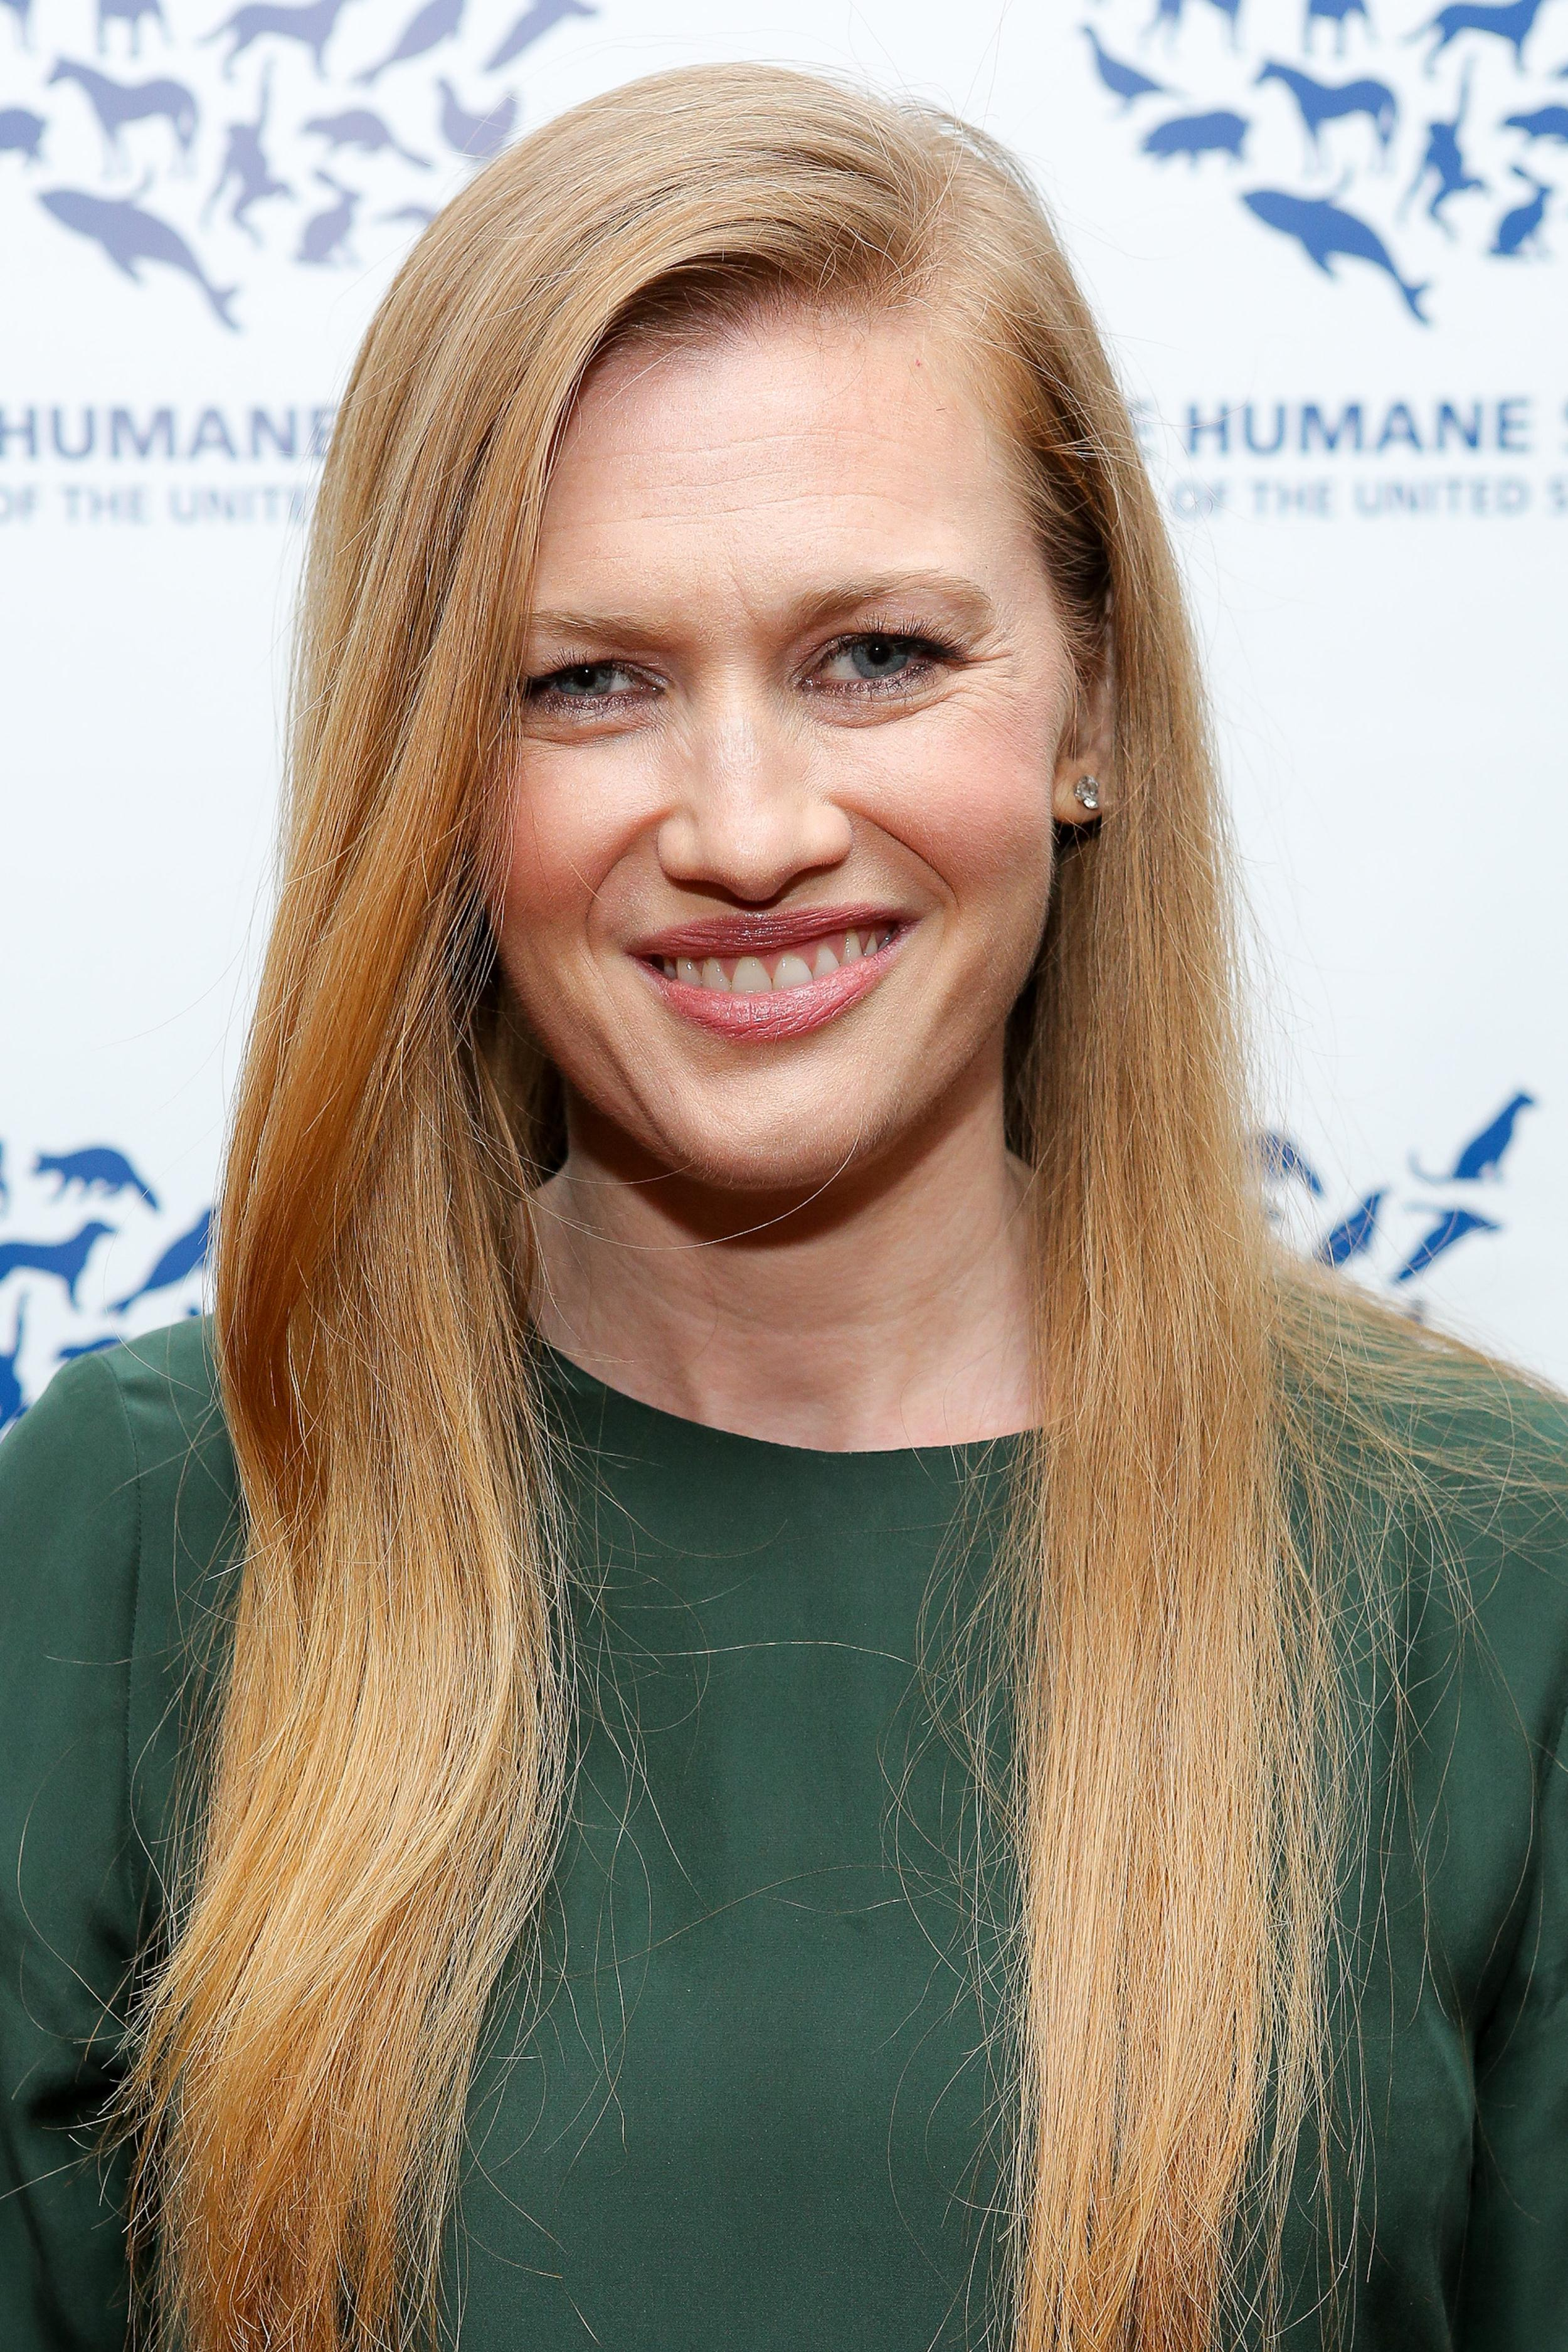 The 42-year old daughter of father (?) and mother(?), 157 cm tall Mireille Enos in 2017 photo